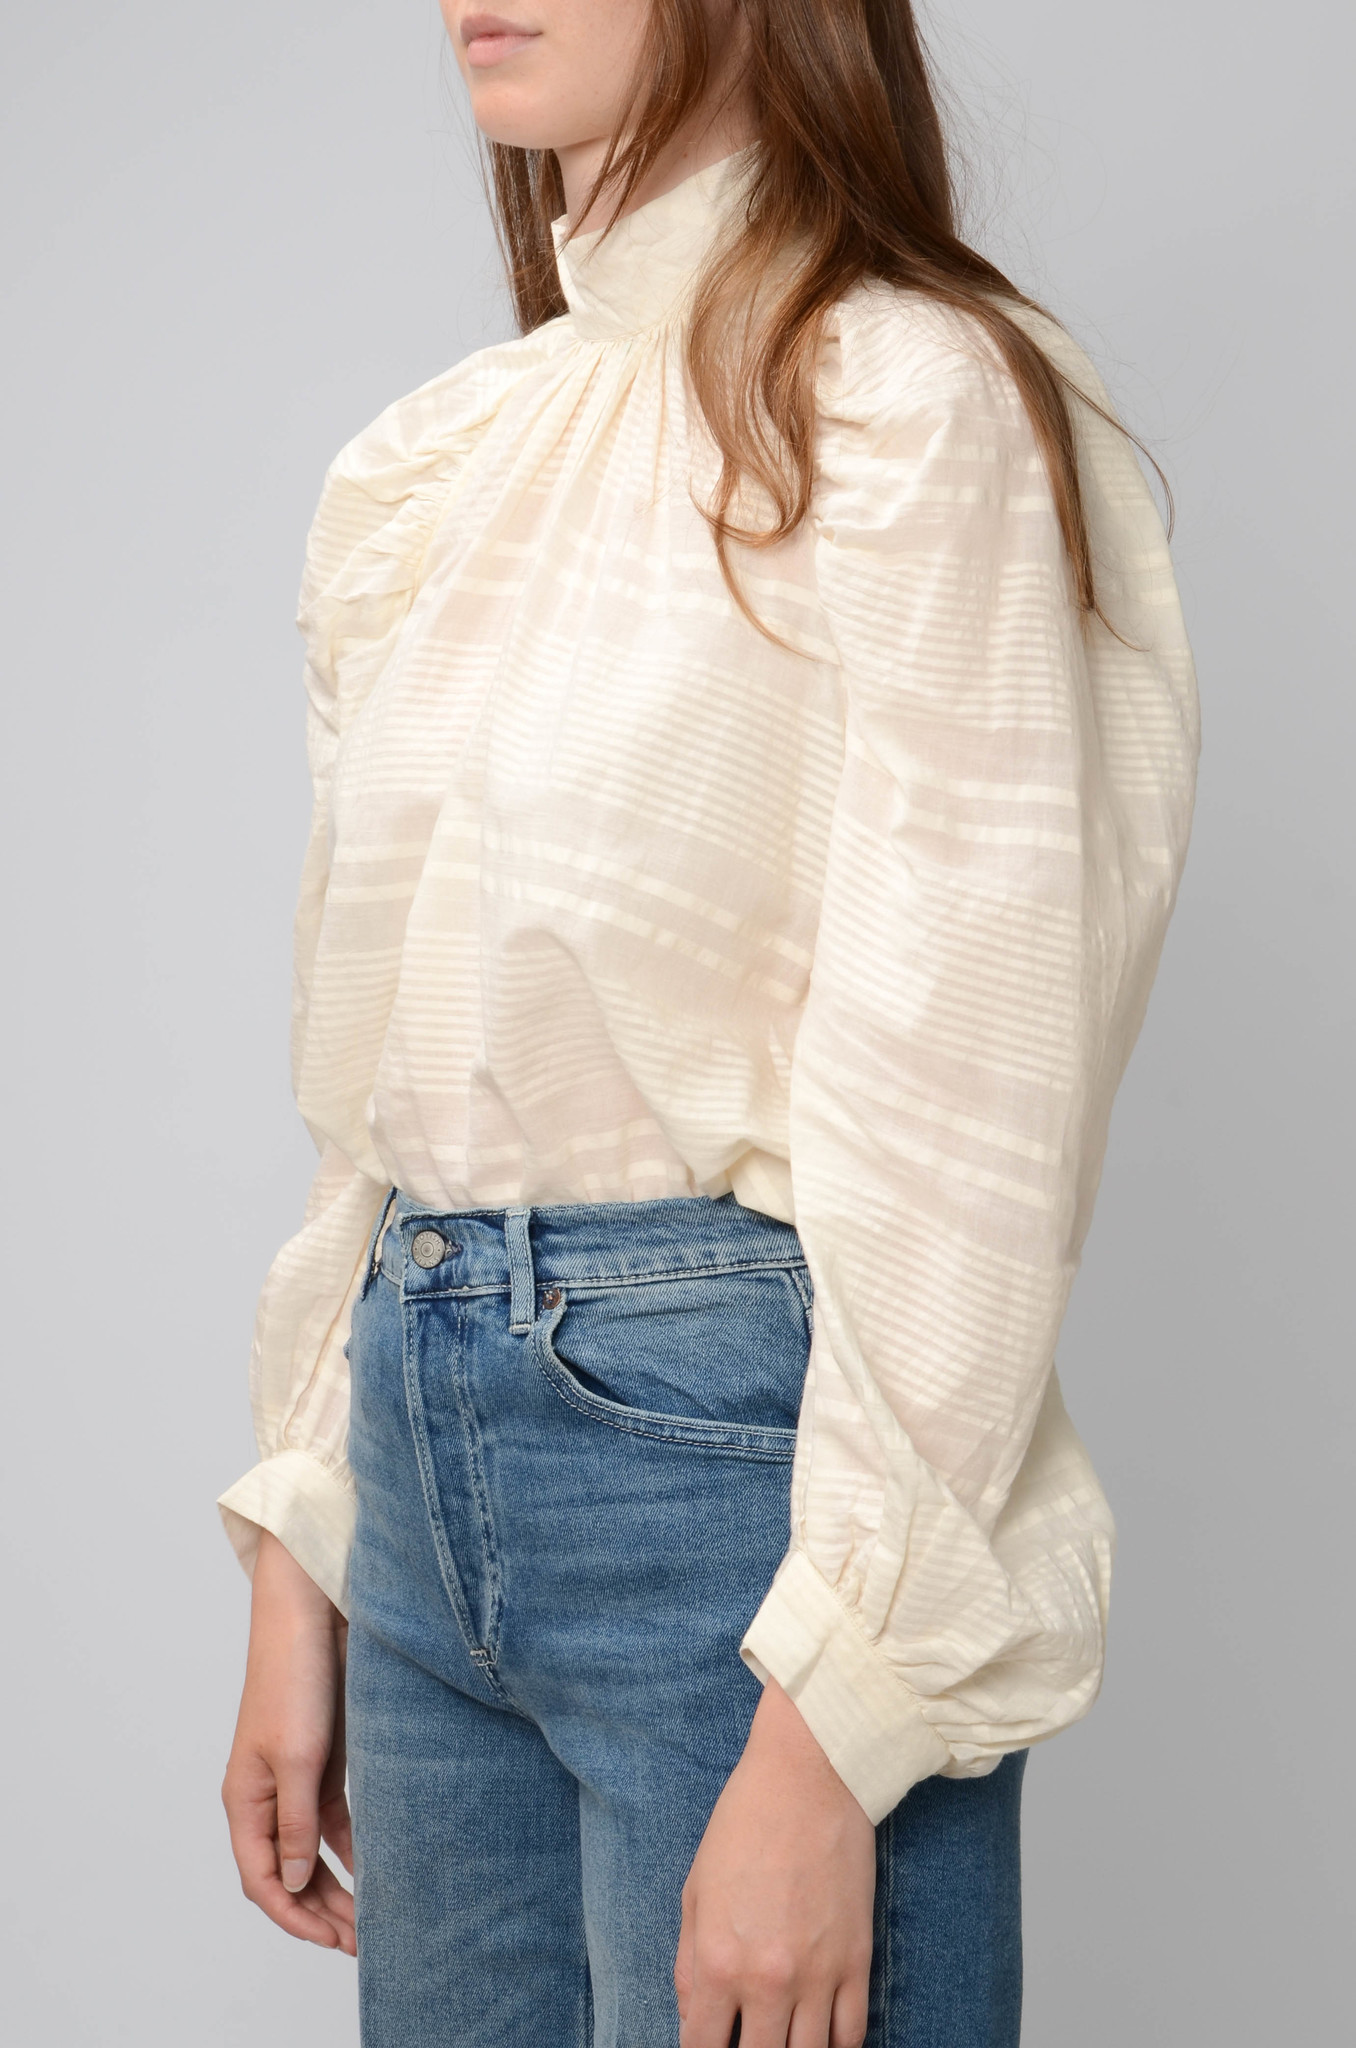 ASTA BLOUSE IN OFF WHITE-3